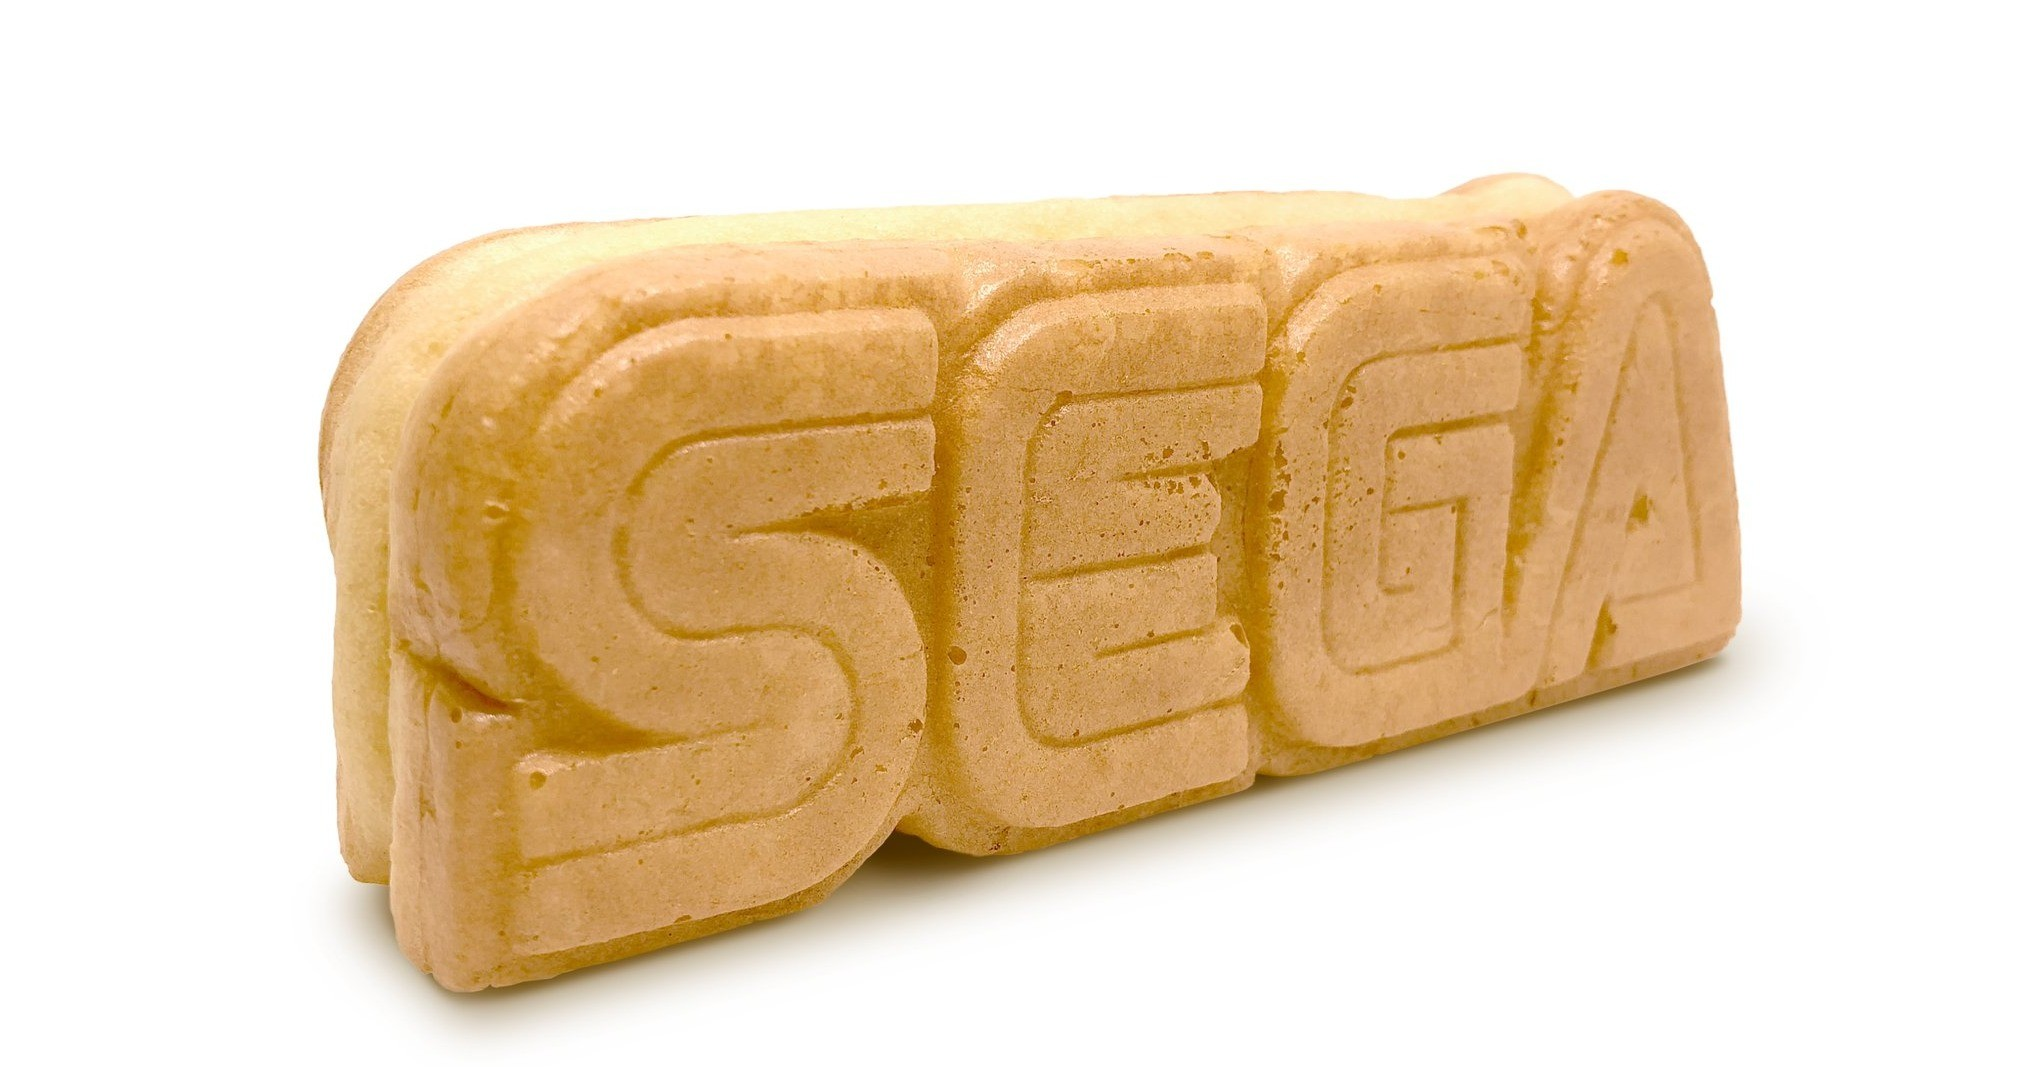 , セガのたい焼き 池袋店, Sega, Food, Taiyaki, Sweet bean paste, Monaka, Logo, Psilocybin mushroom, Therapy, Sega, product, material